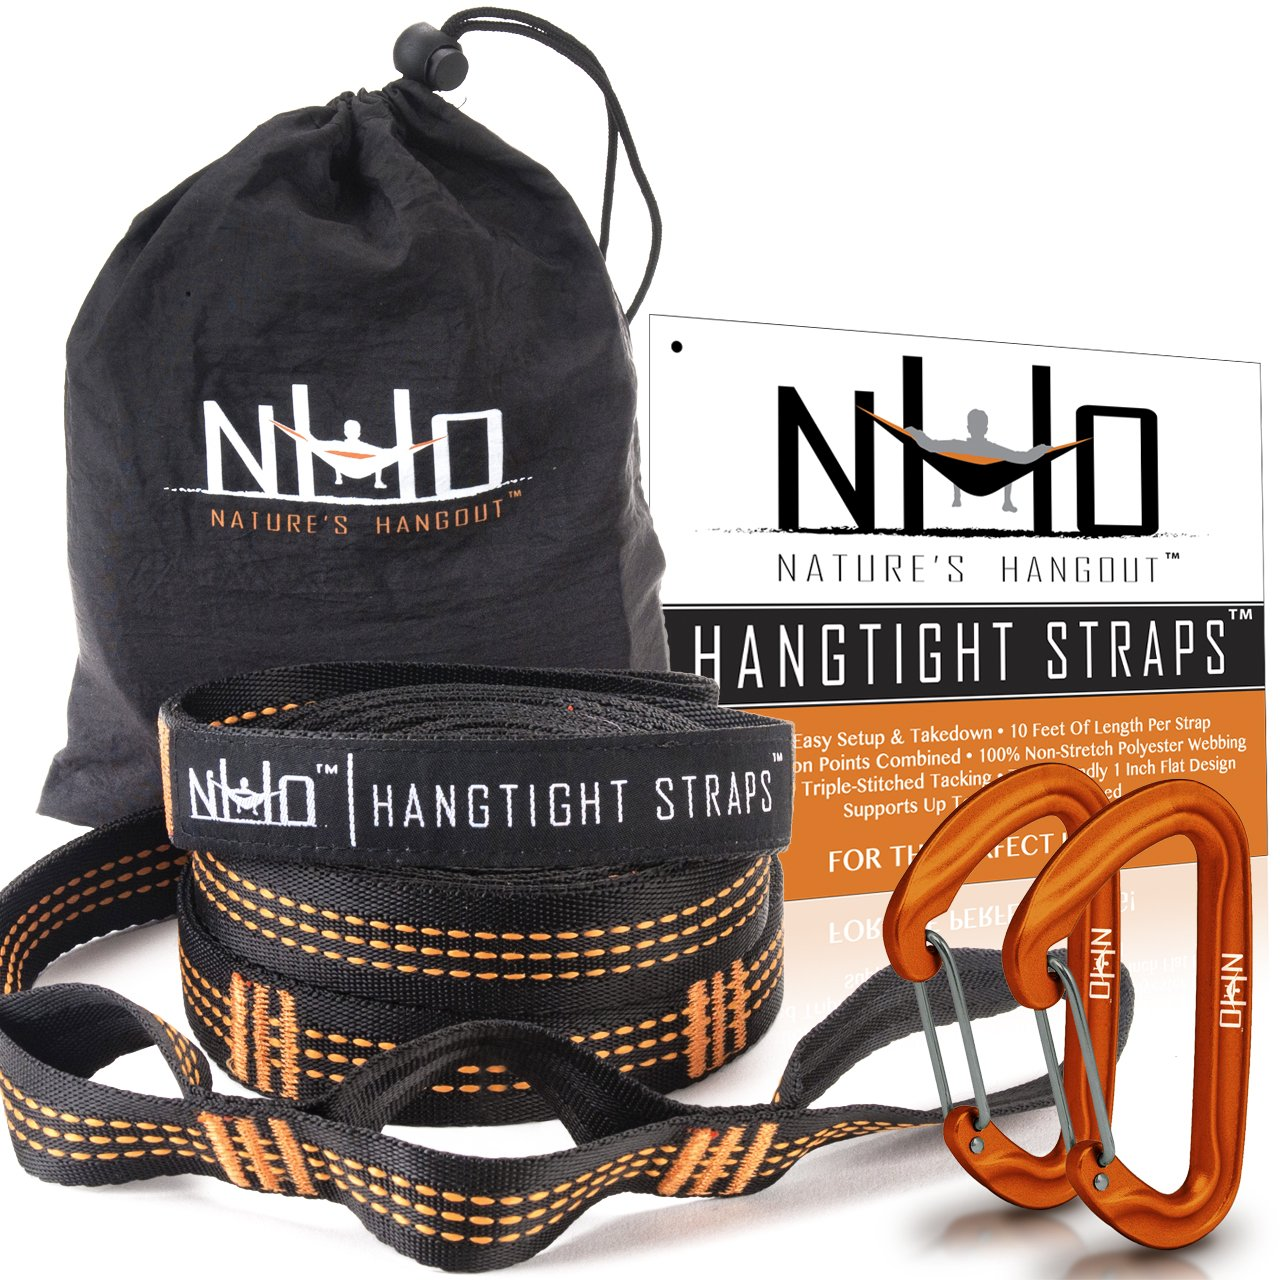 Top 10 Best Hammock Straps 2021 Reviews 1